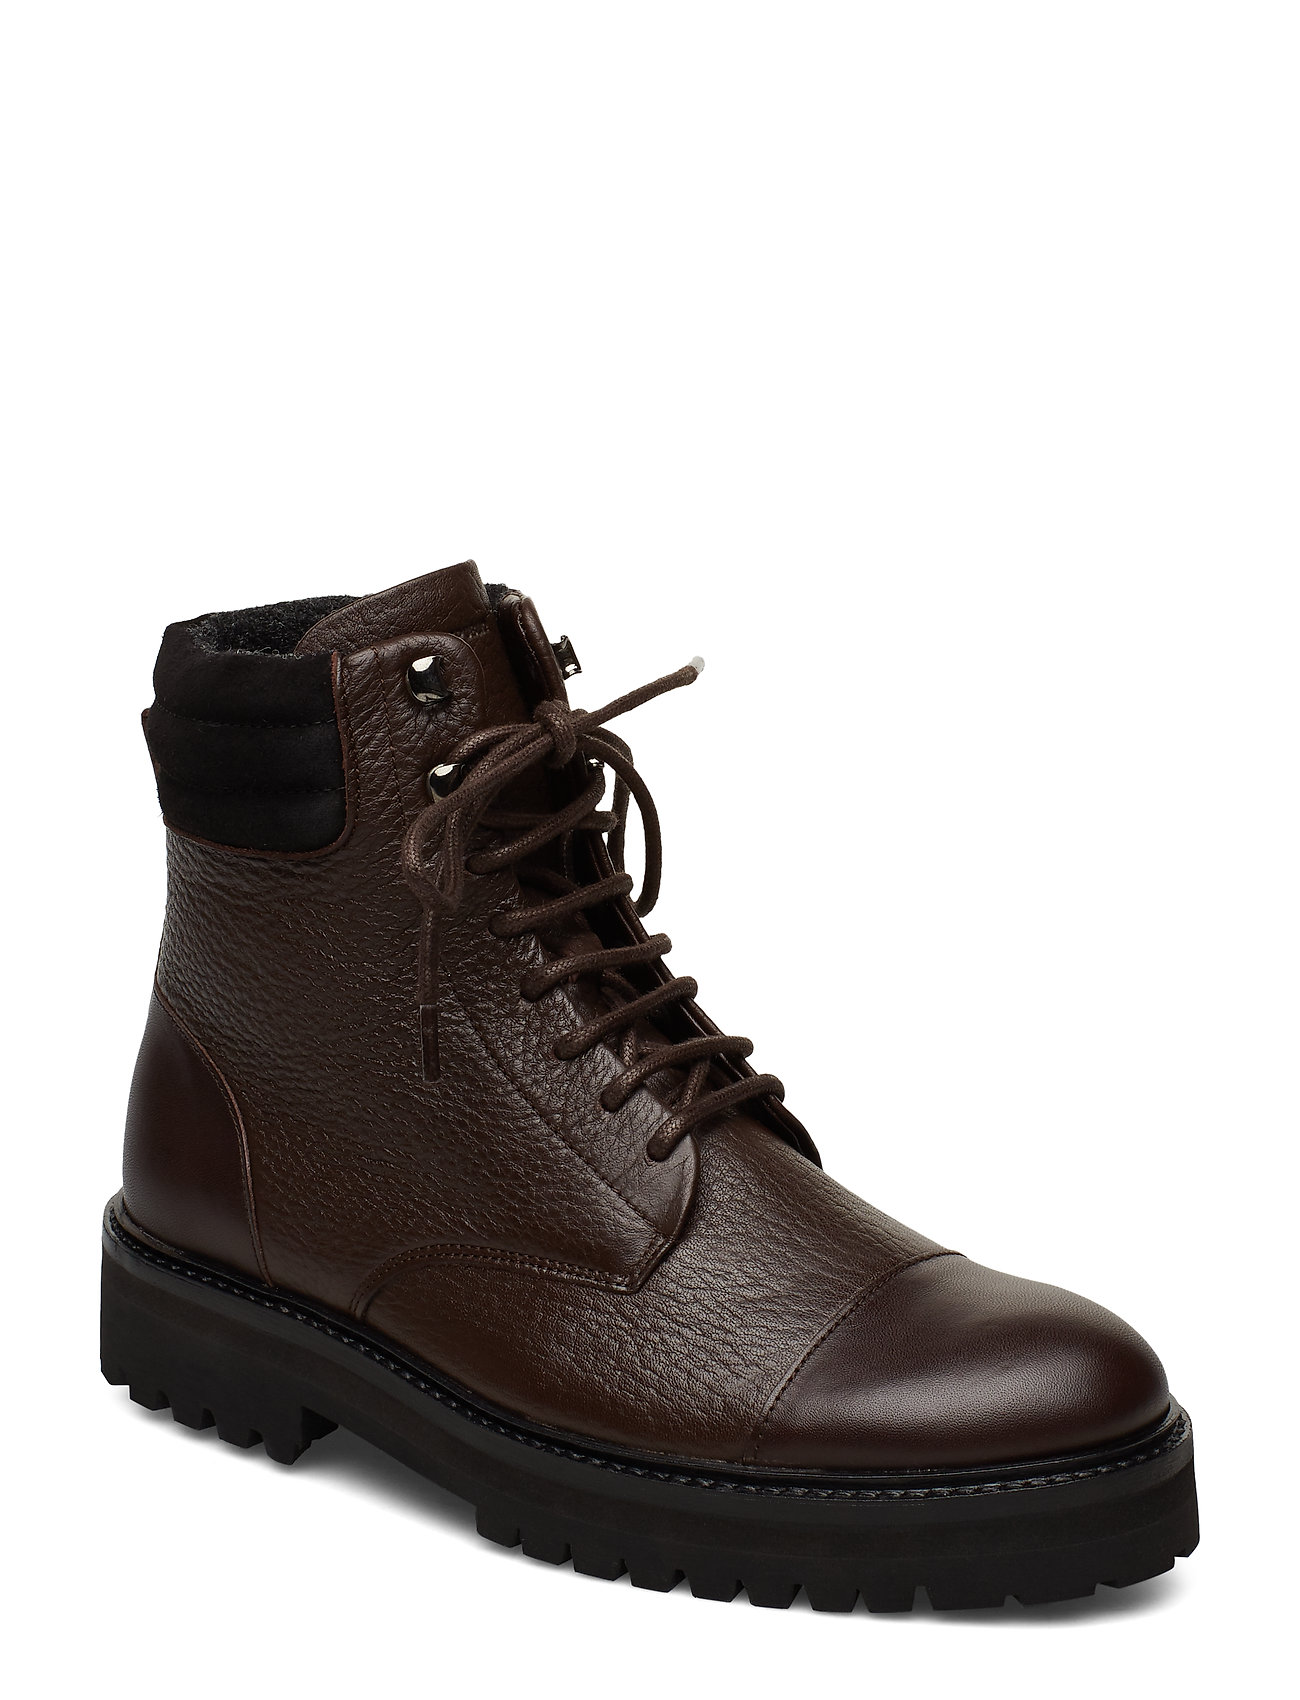 Image of Ave Hiker Combat Boot Shoes Boots Ankle Boots Ankle Boots Flat Heel Brun Royal RepubliQ (3220492857)